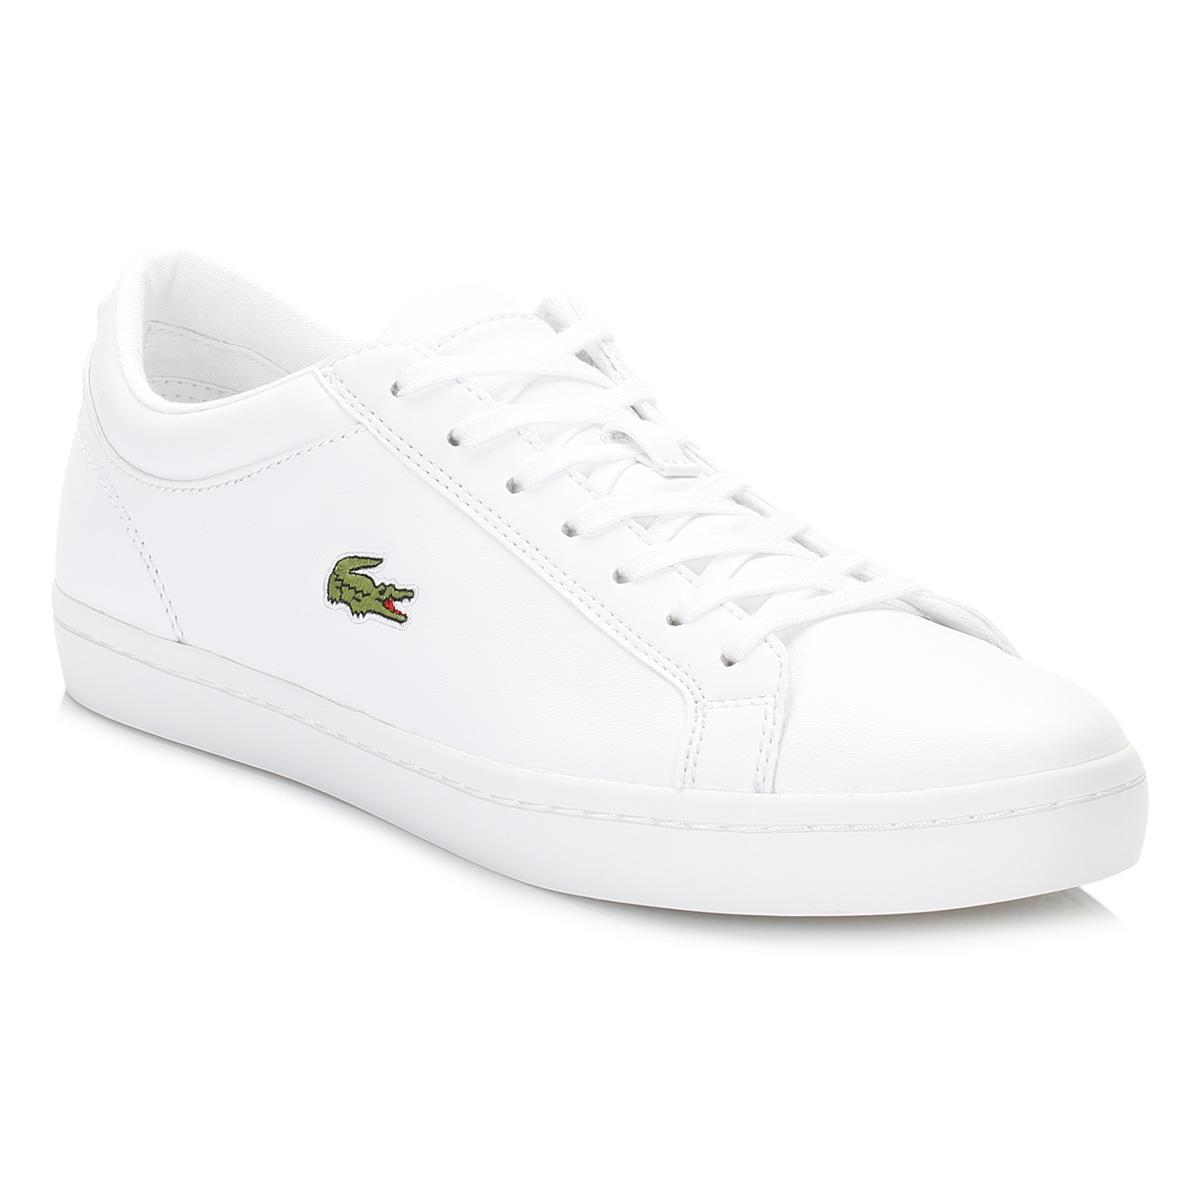 ef67694e01b Lyst - Lacoste Womens White Straightset Bl1 Spw Trainers Women s In ...